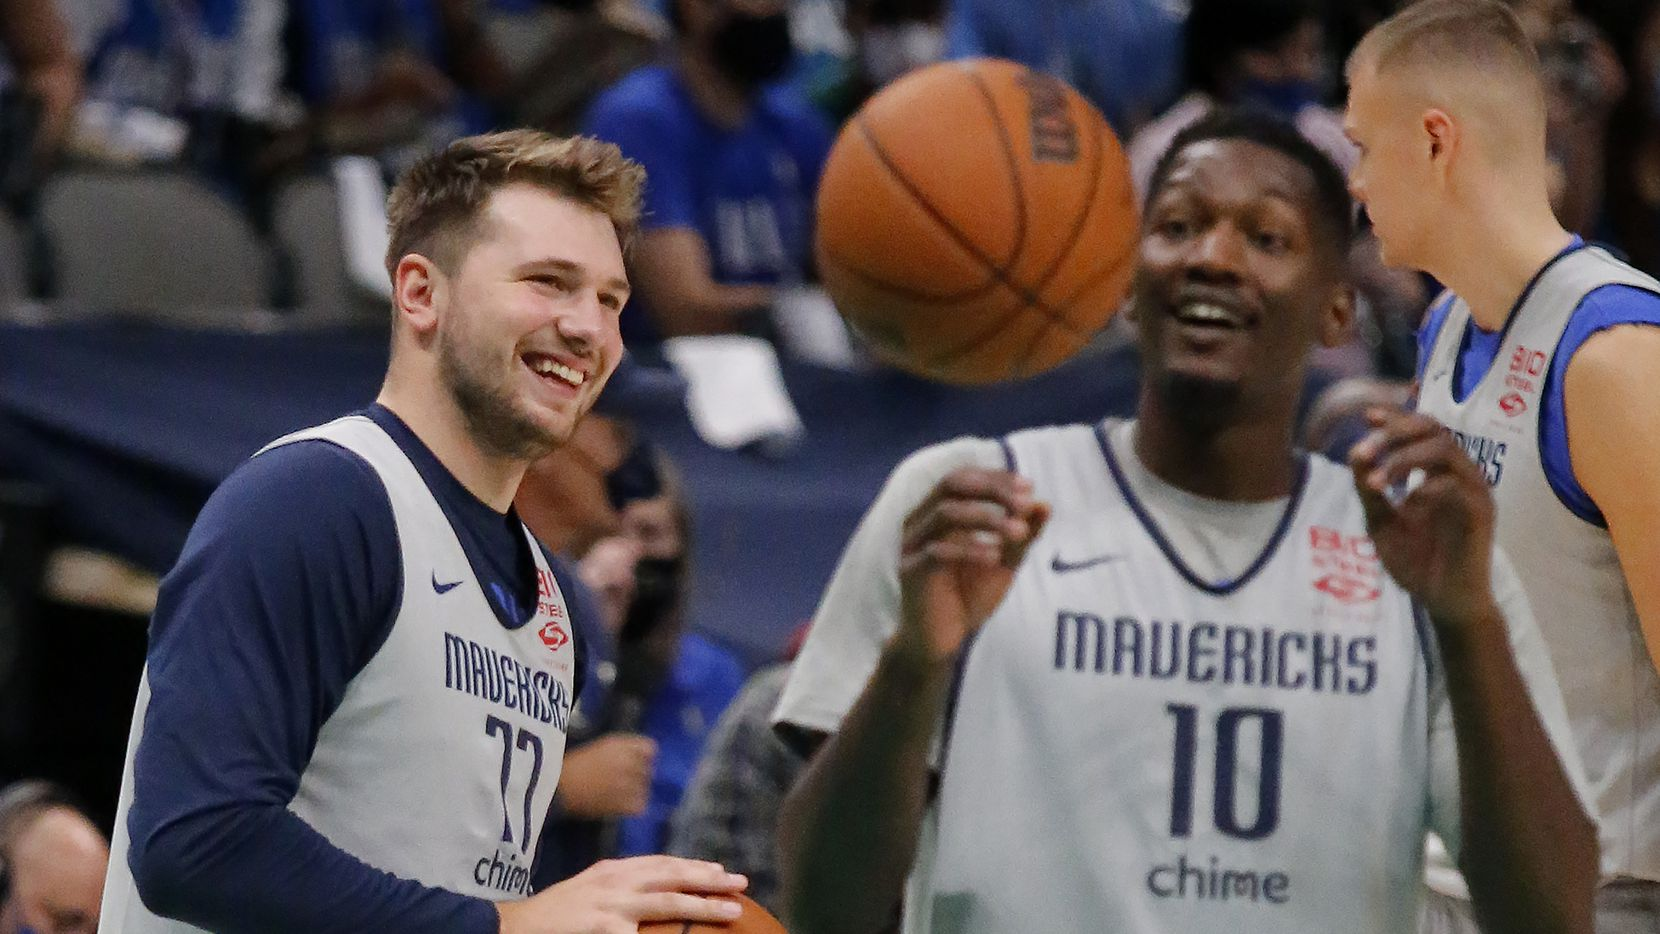 Dallas Mavericks guard Luka Doncic (77) shares a laugh with Dallas Mavericks forward Dorian Finney-Smith (10) during warm ups as the Dallas Mavericks held their Mavs Fam Jam, a scrimmage free to the public at the American Airlines Center in Dallas on Sunday, October 3, 2021.